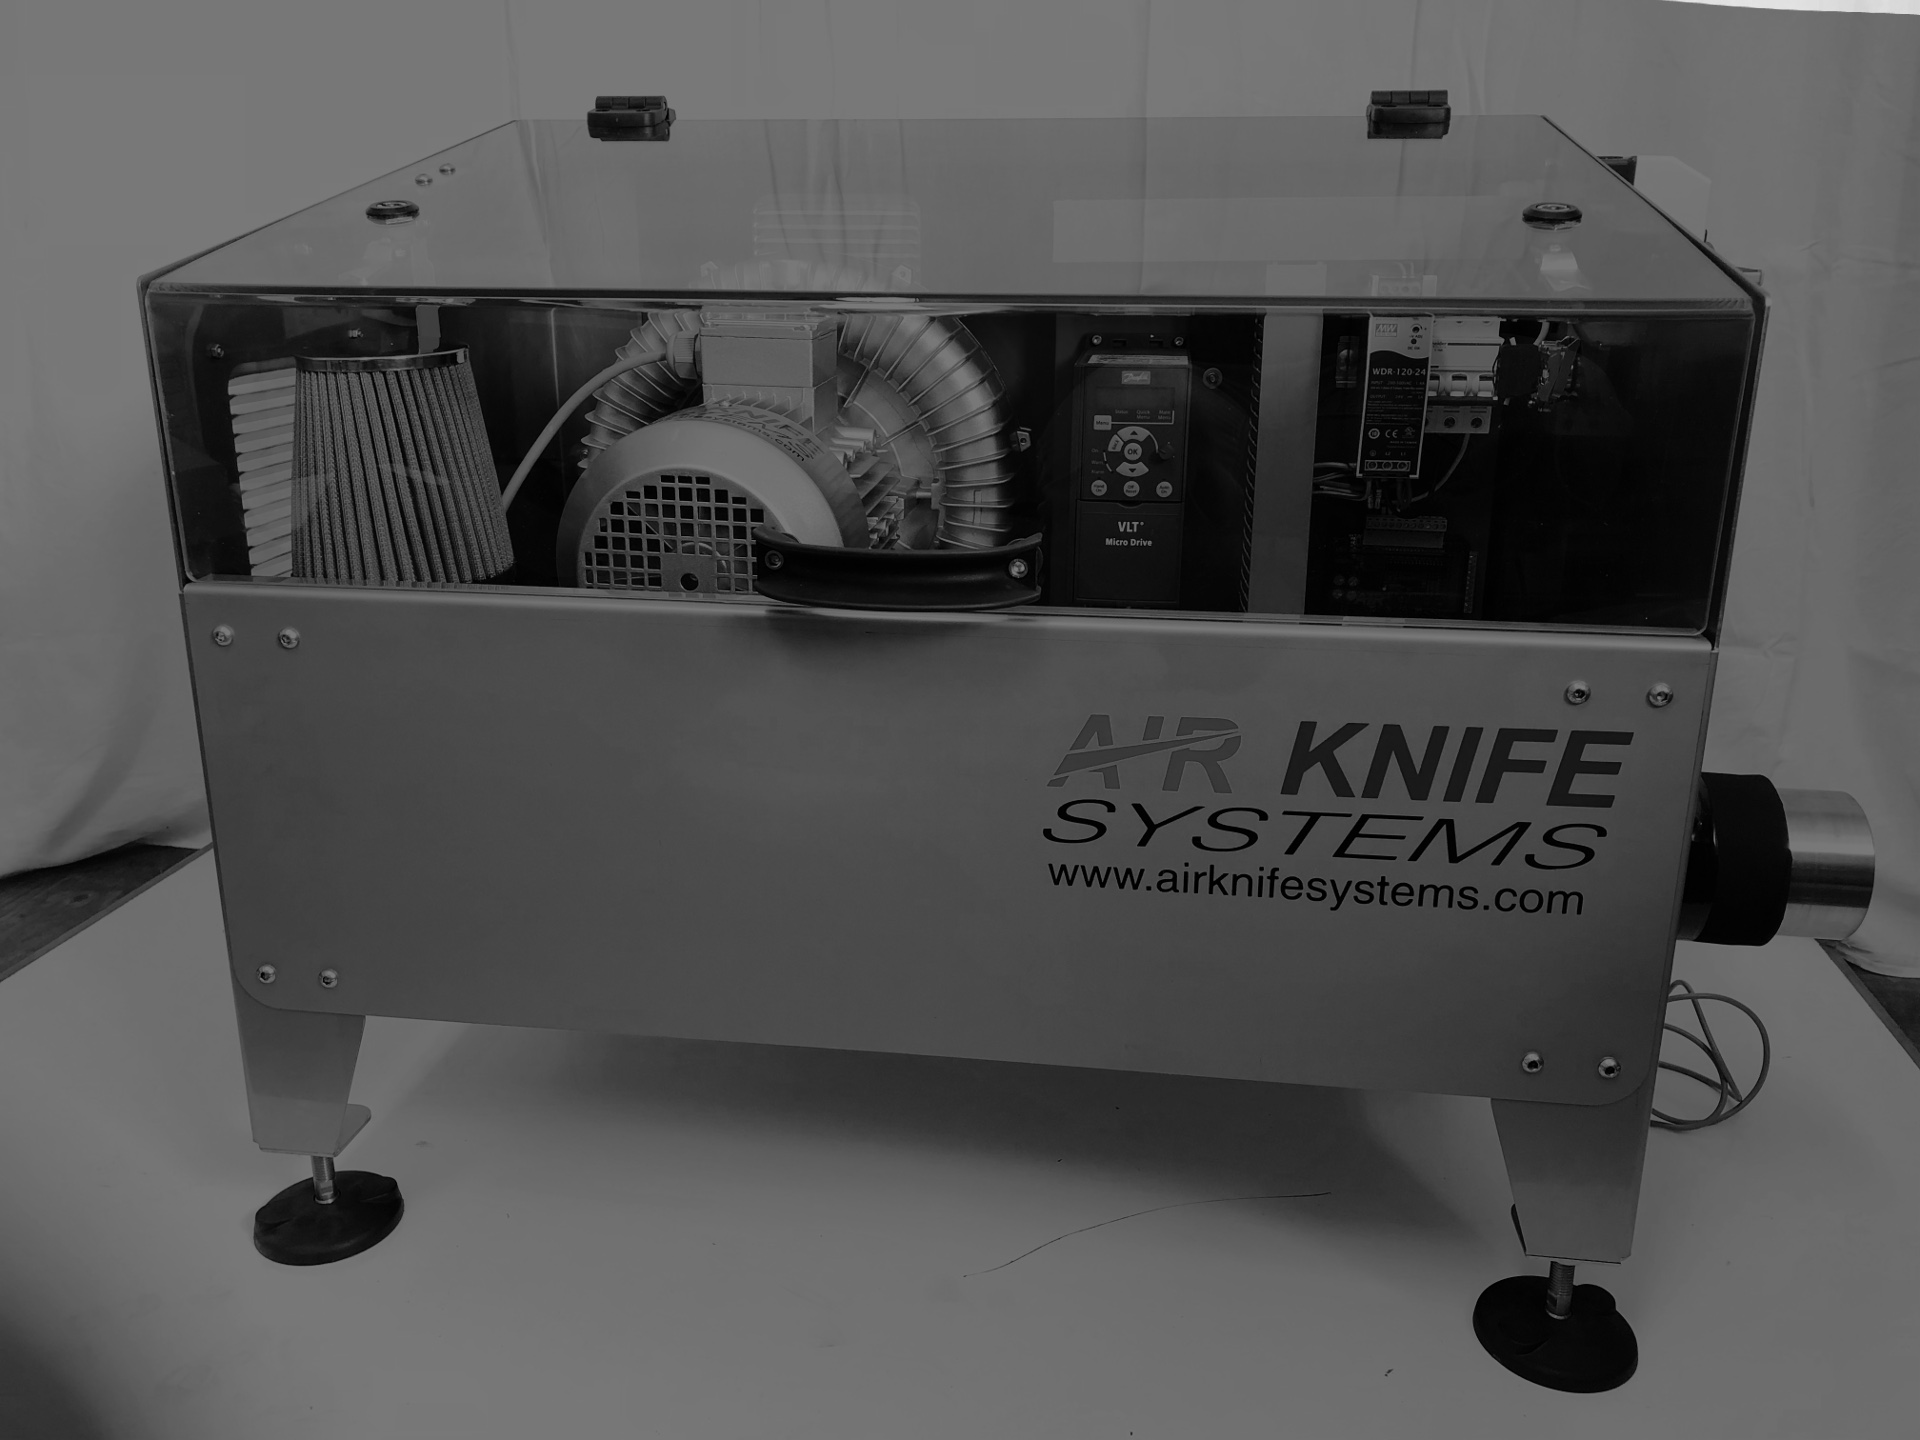 Air knife systems Eastern Cape